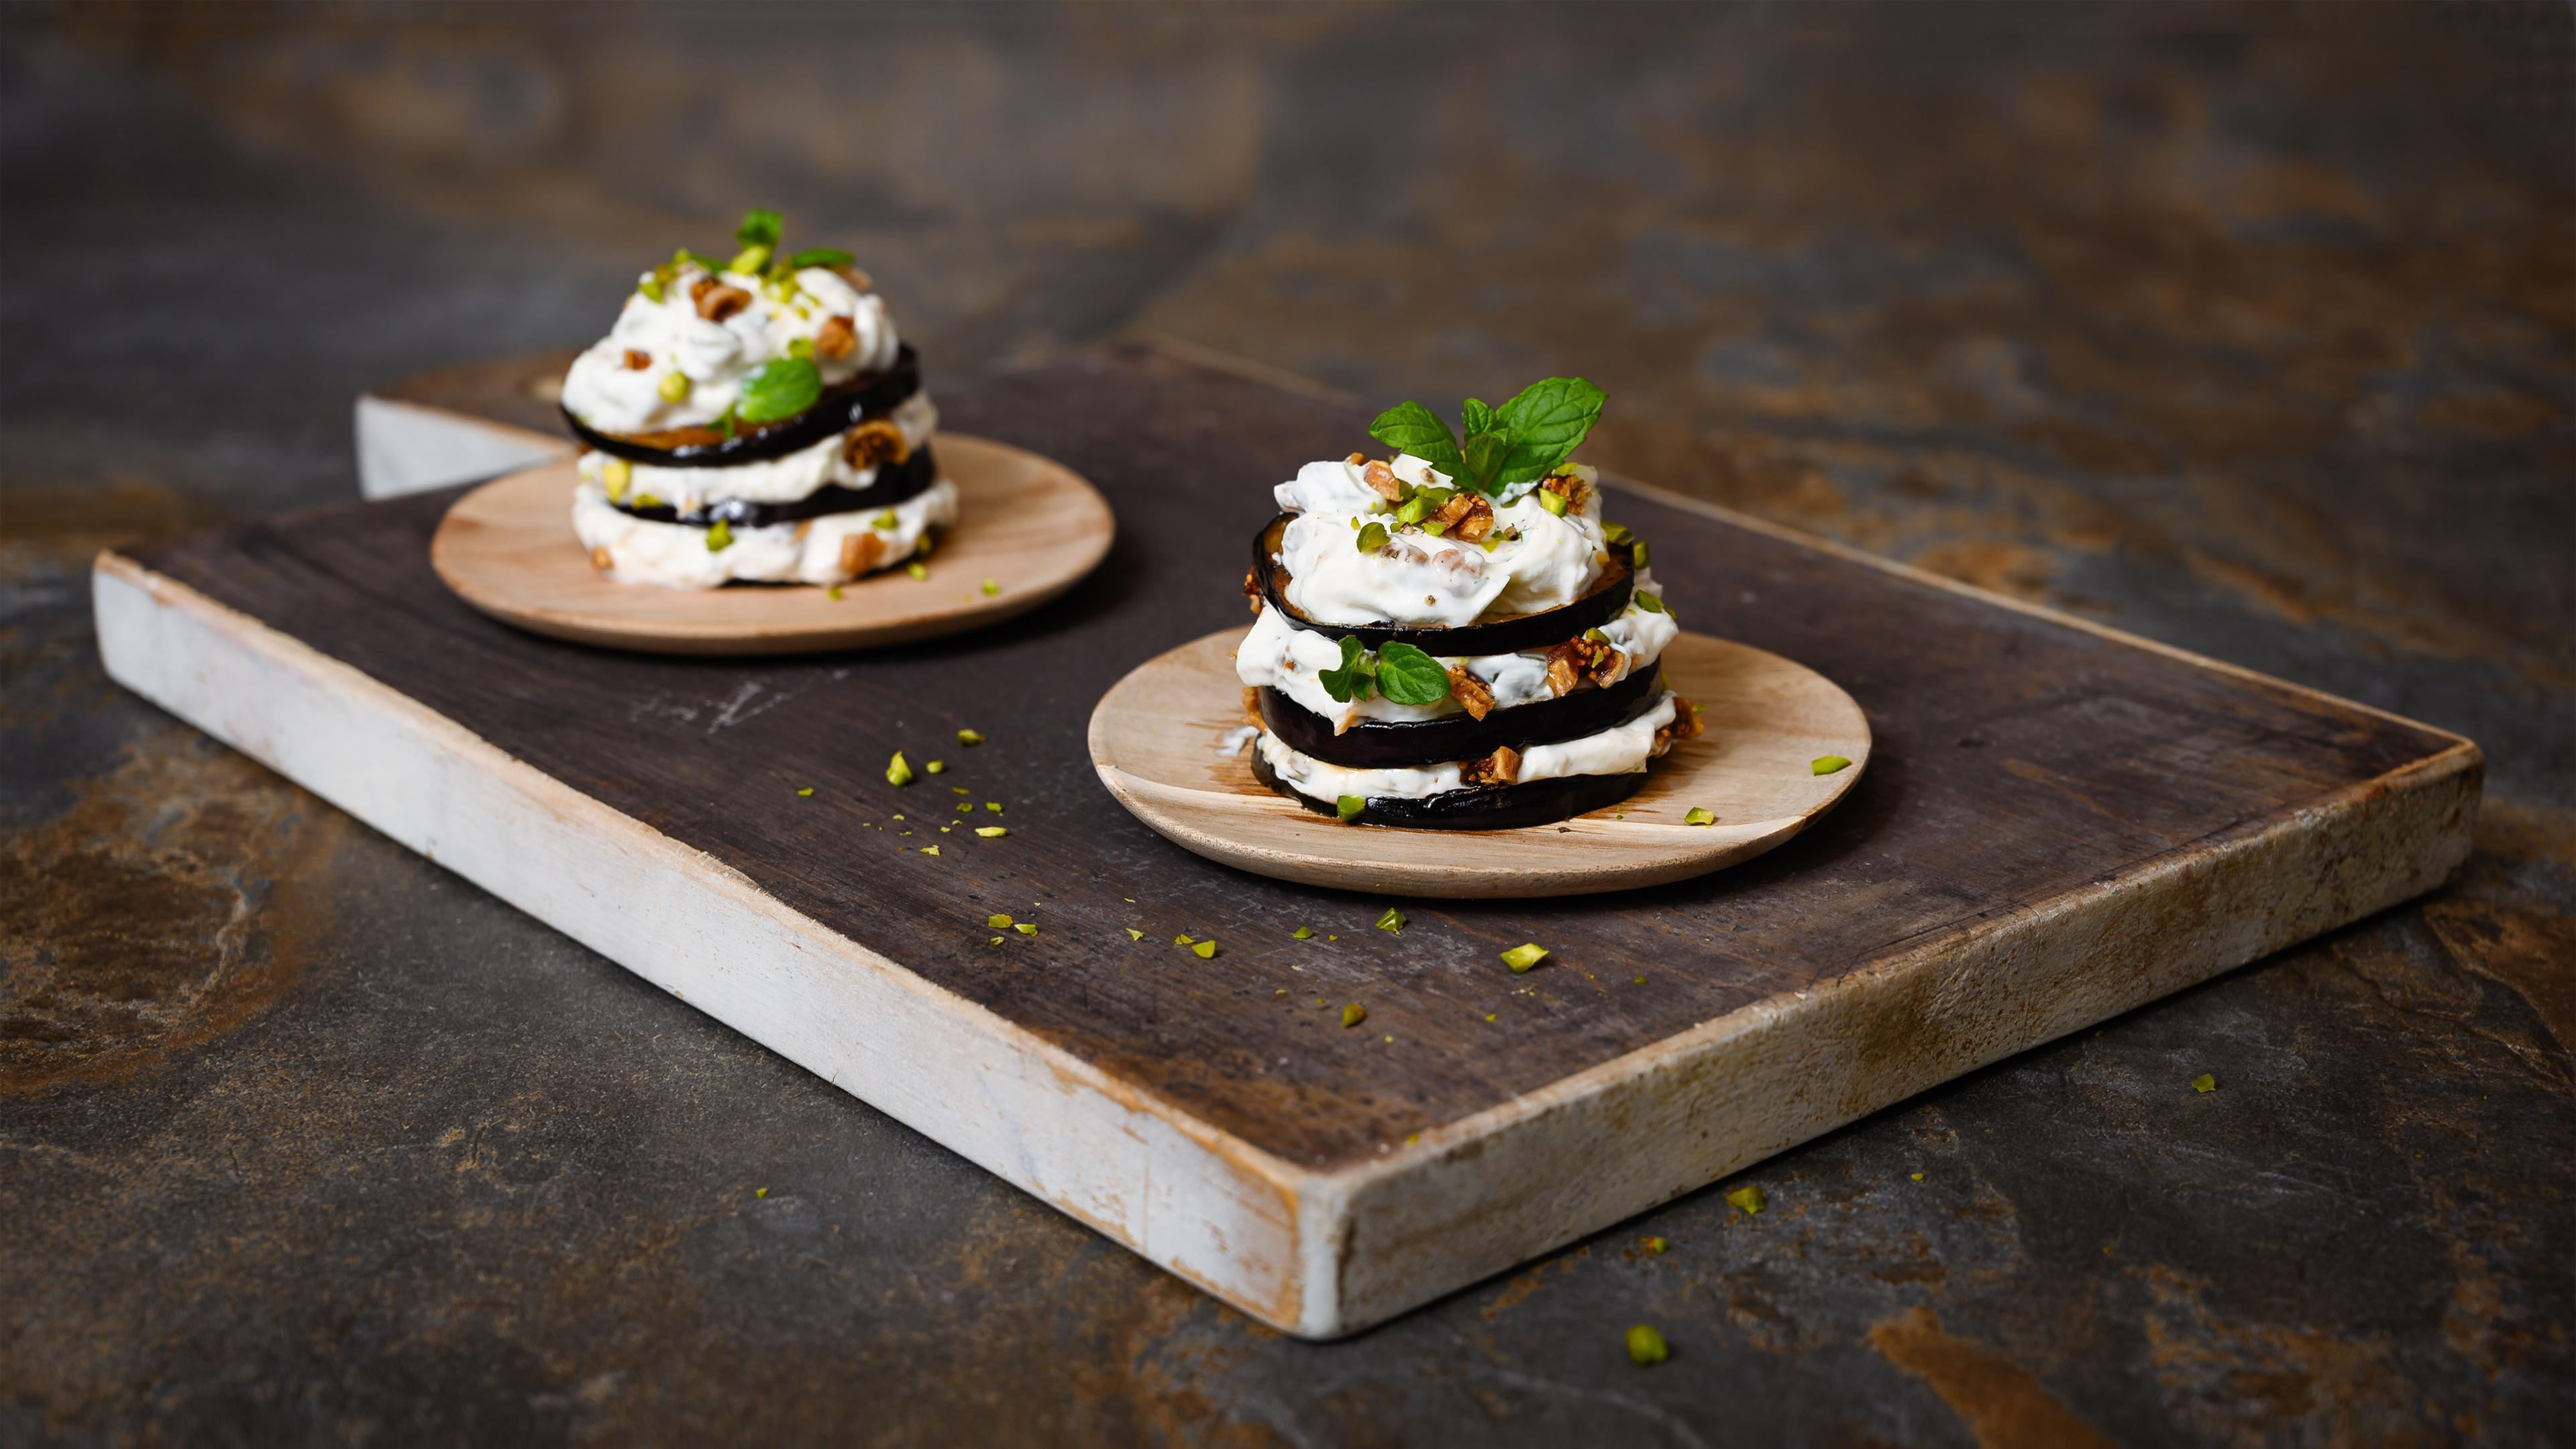 Aubergine towers with goat's cheese, pistachios, mint and dried figs